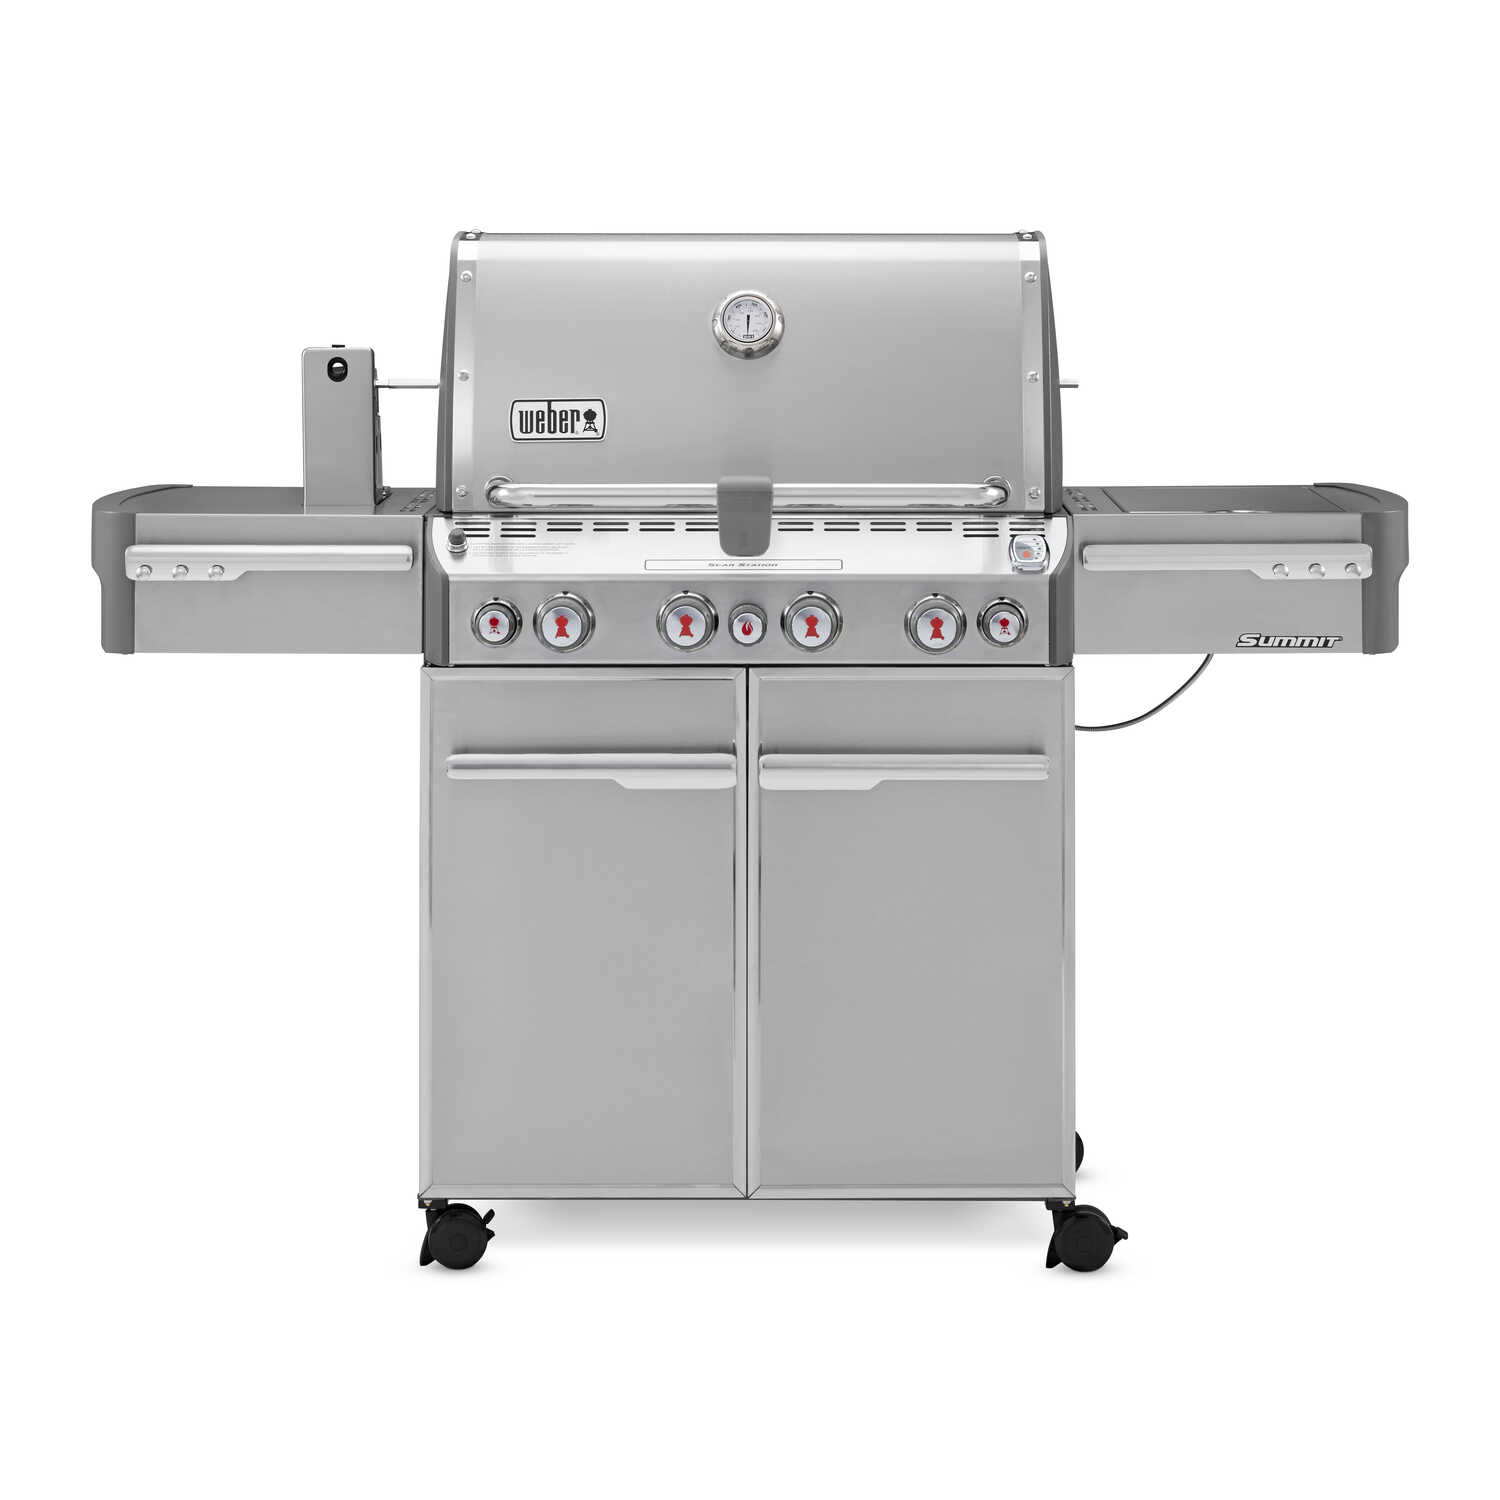 Weber  Summit S-470  4 burners Natural Gas  Grill  Stainless Steel  48800 BTU